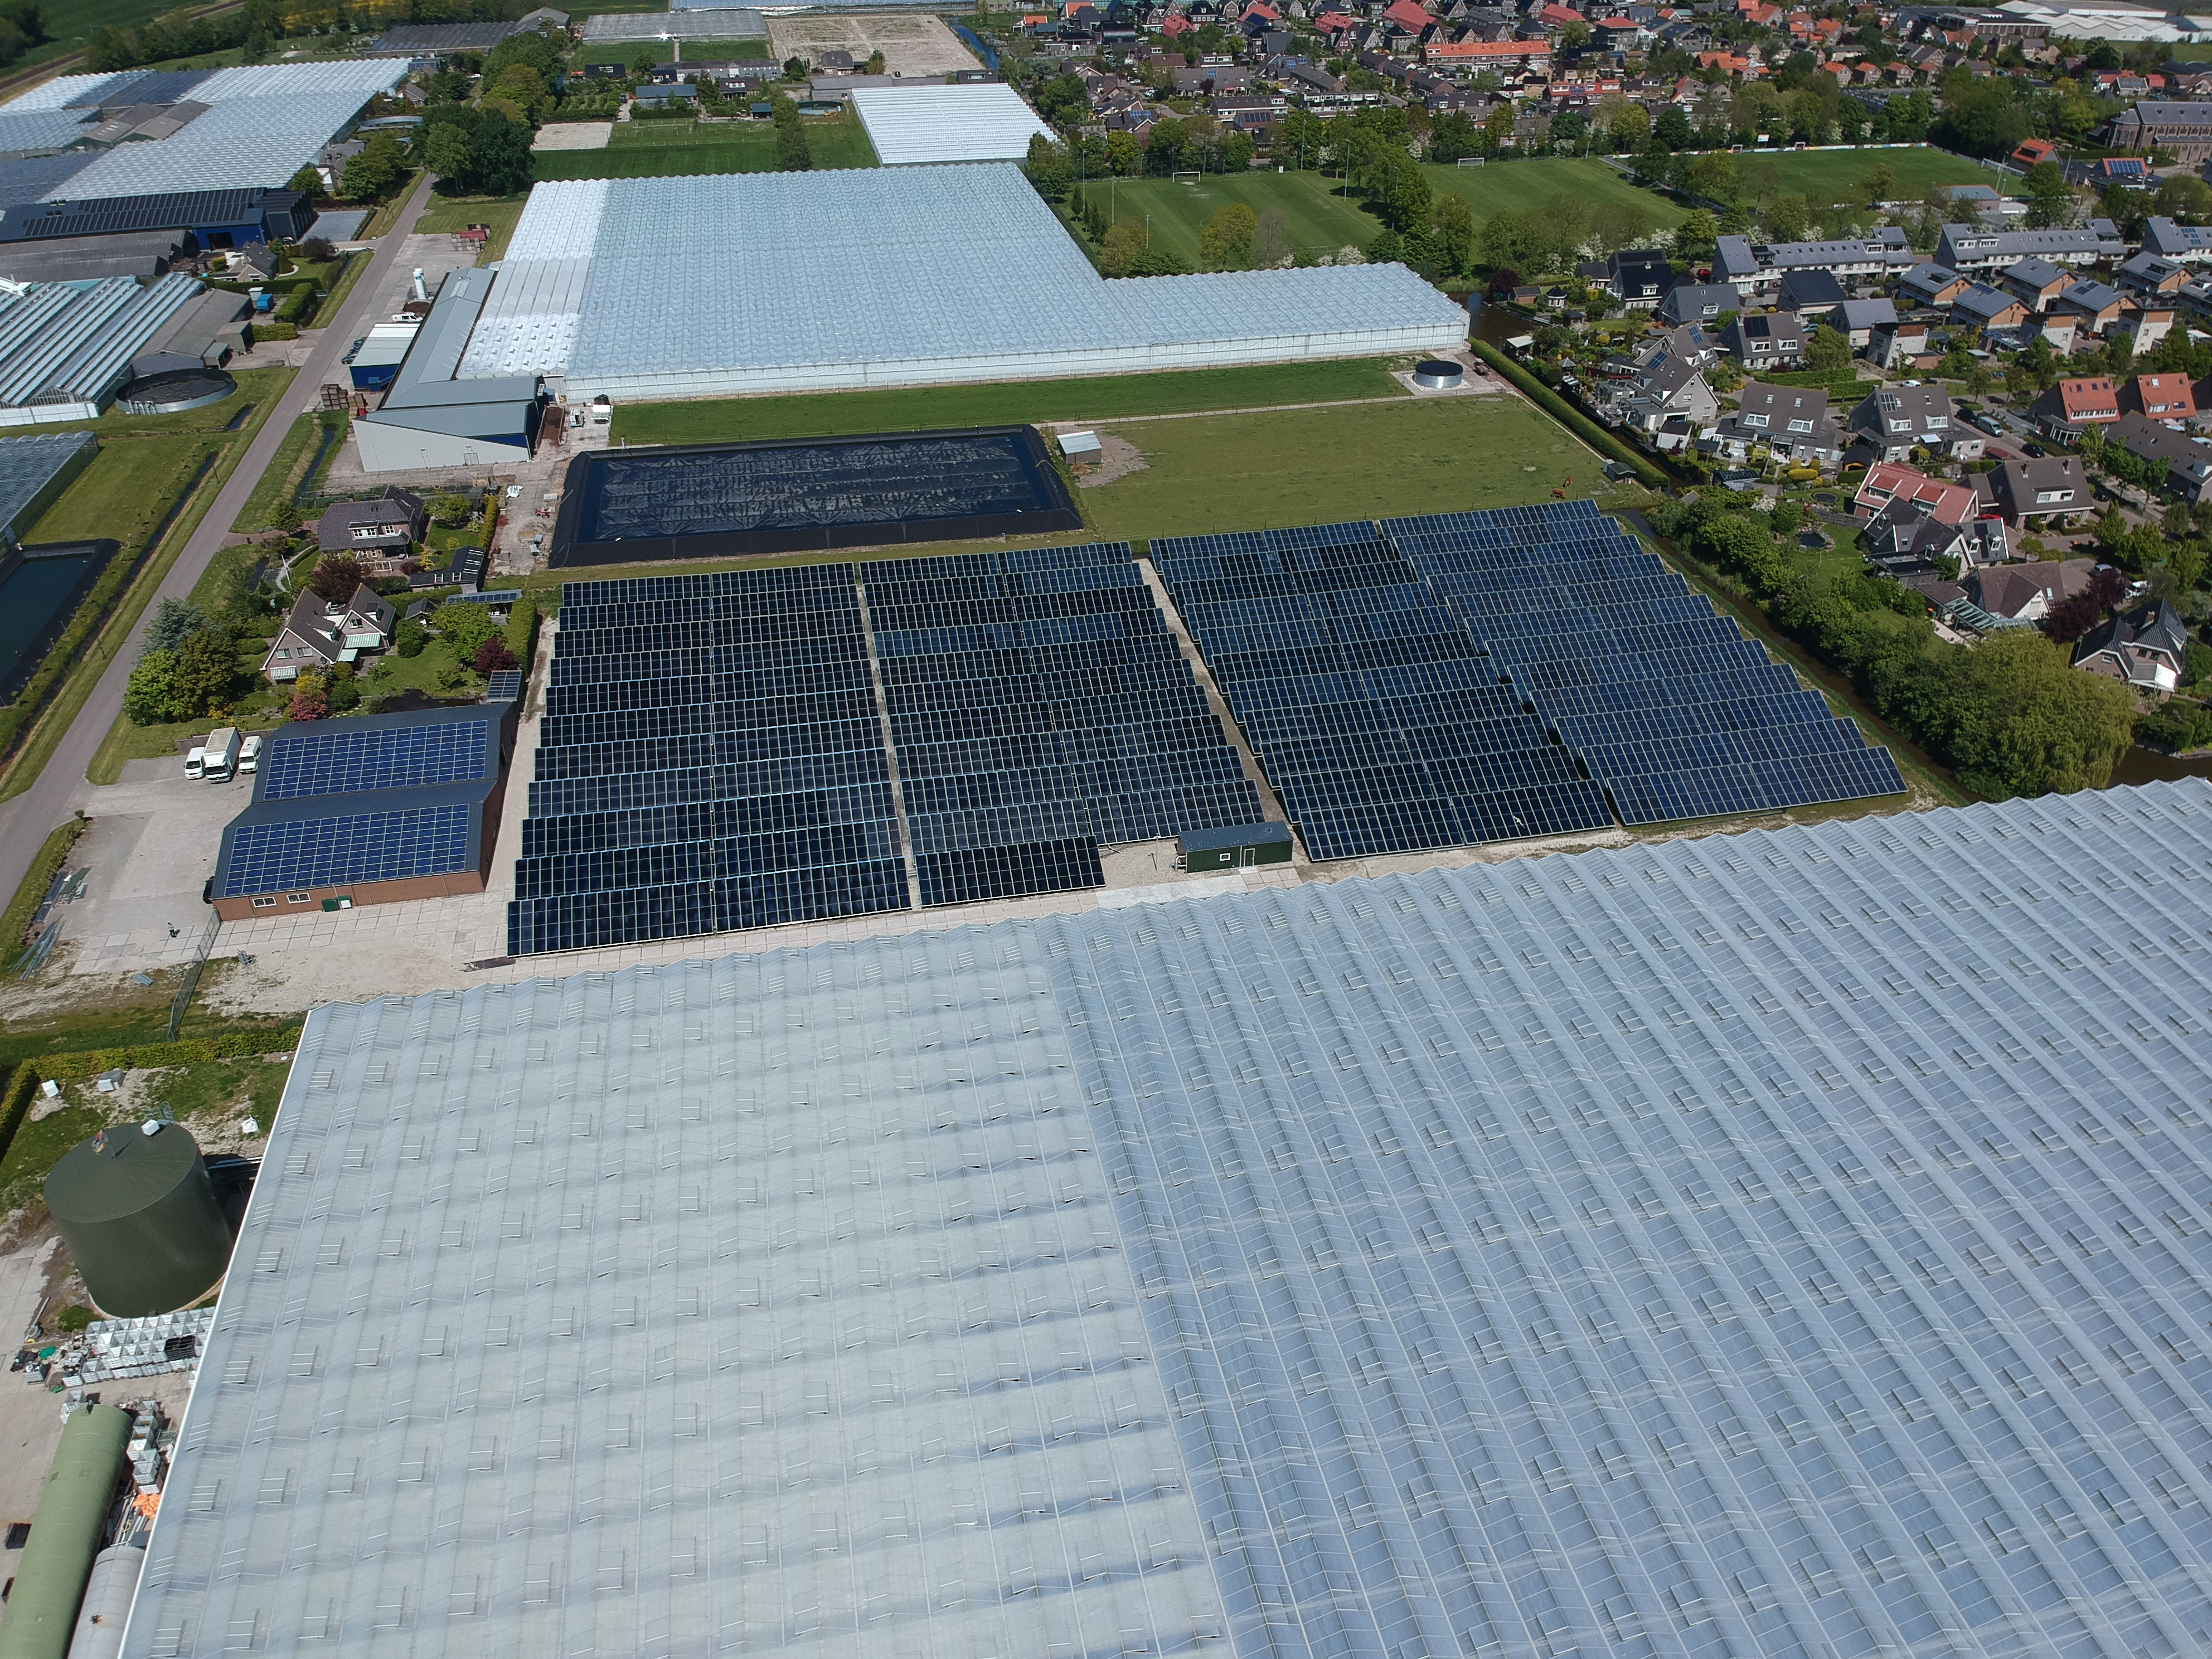 The largest solar heating system in the Netherlands opened (Credits G2Energy)